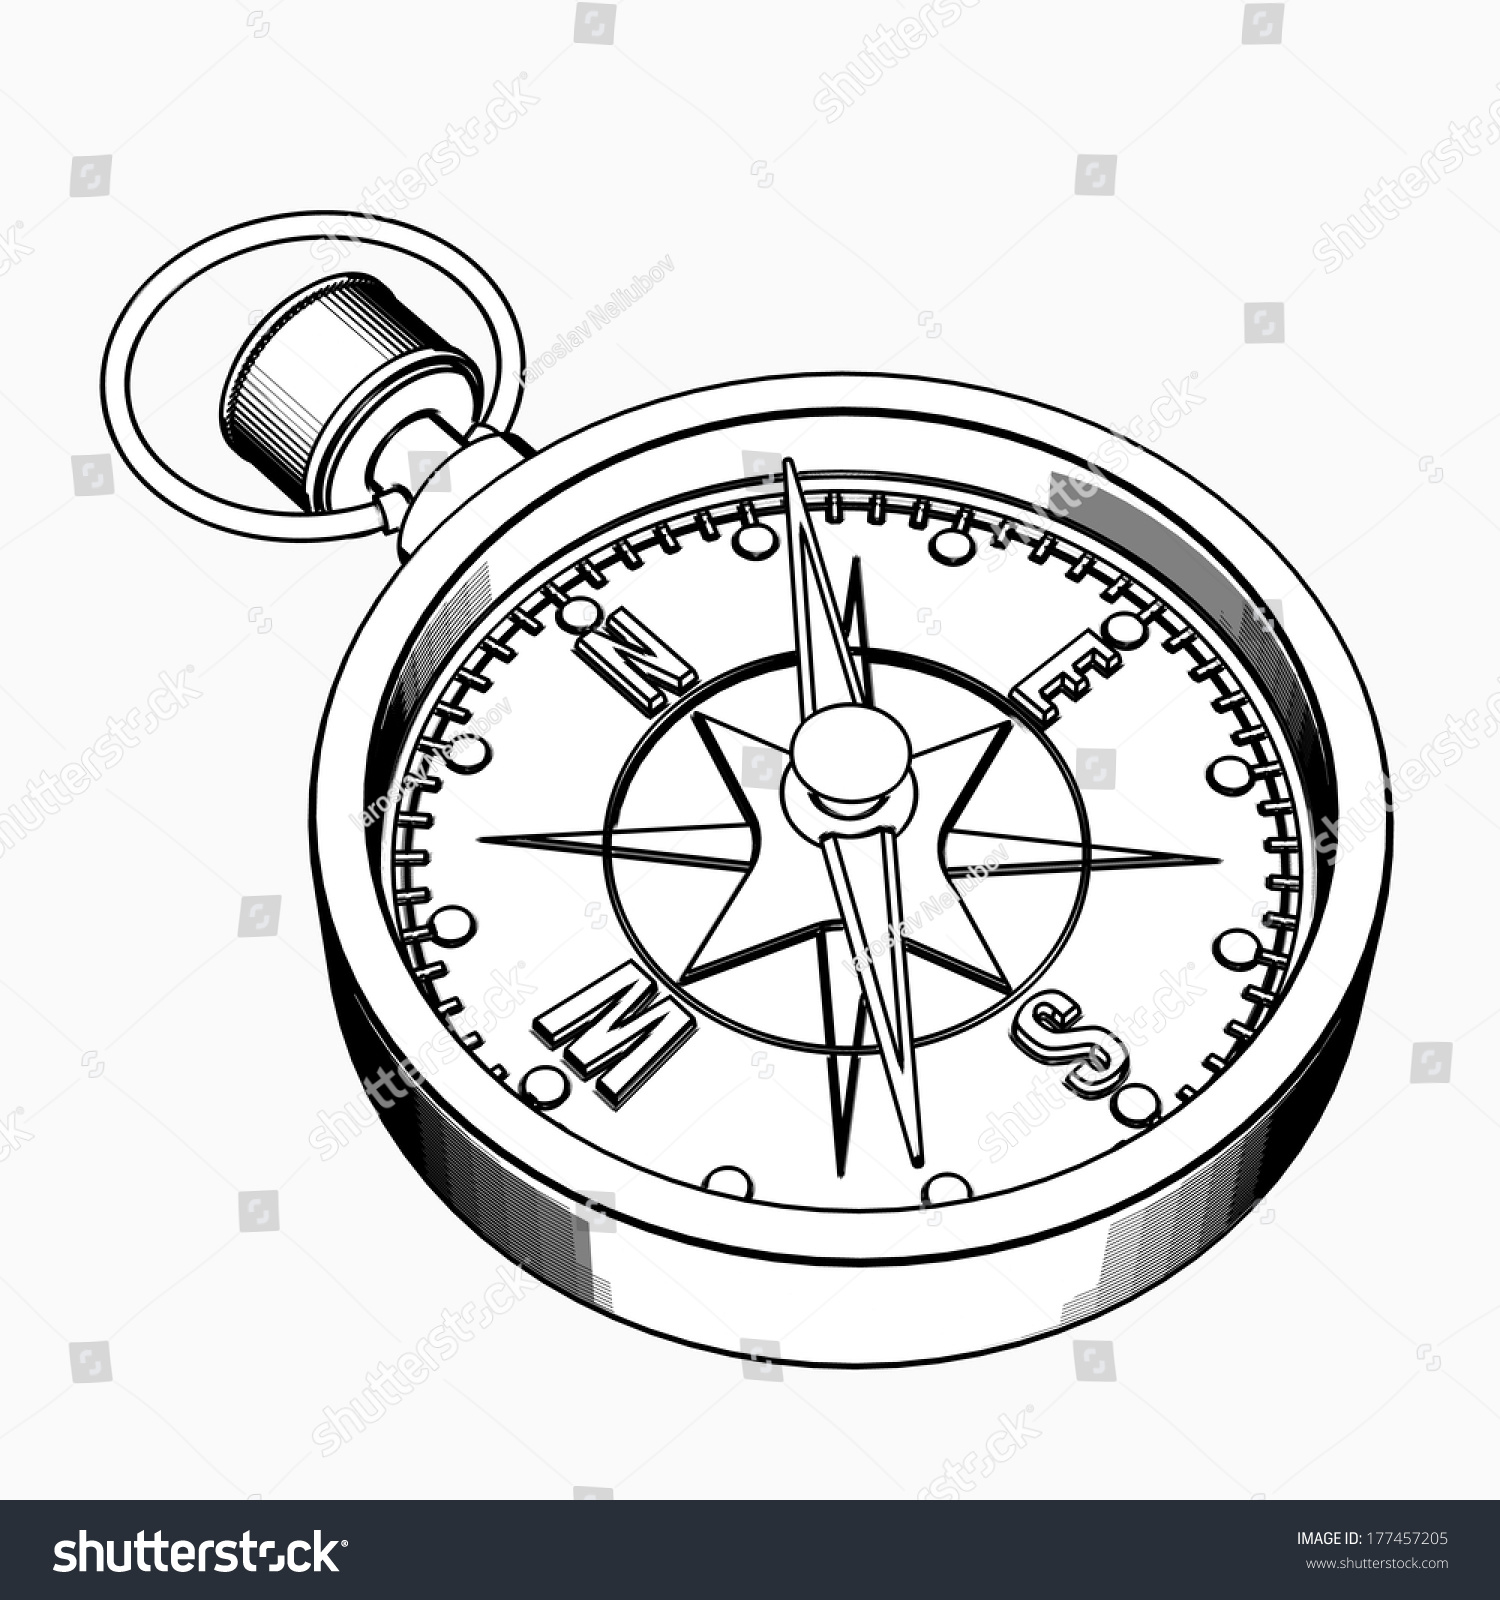 Compass Tattoo Line Drawing : Compass cartoon illustration outline high resolution stock